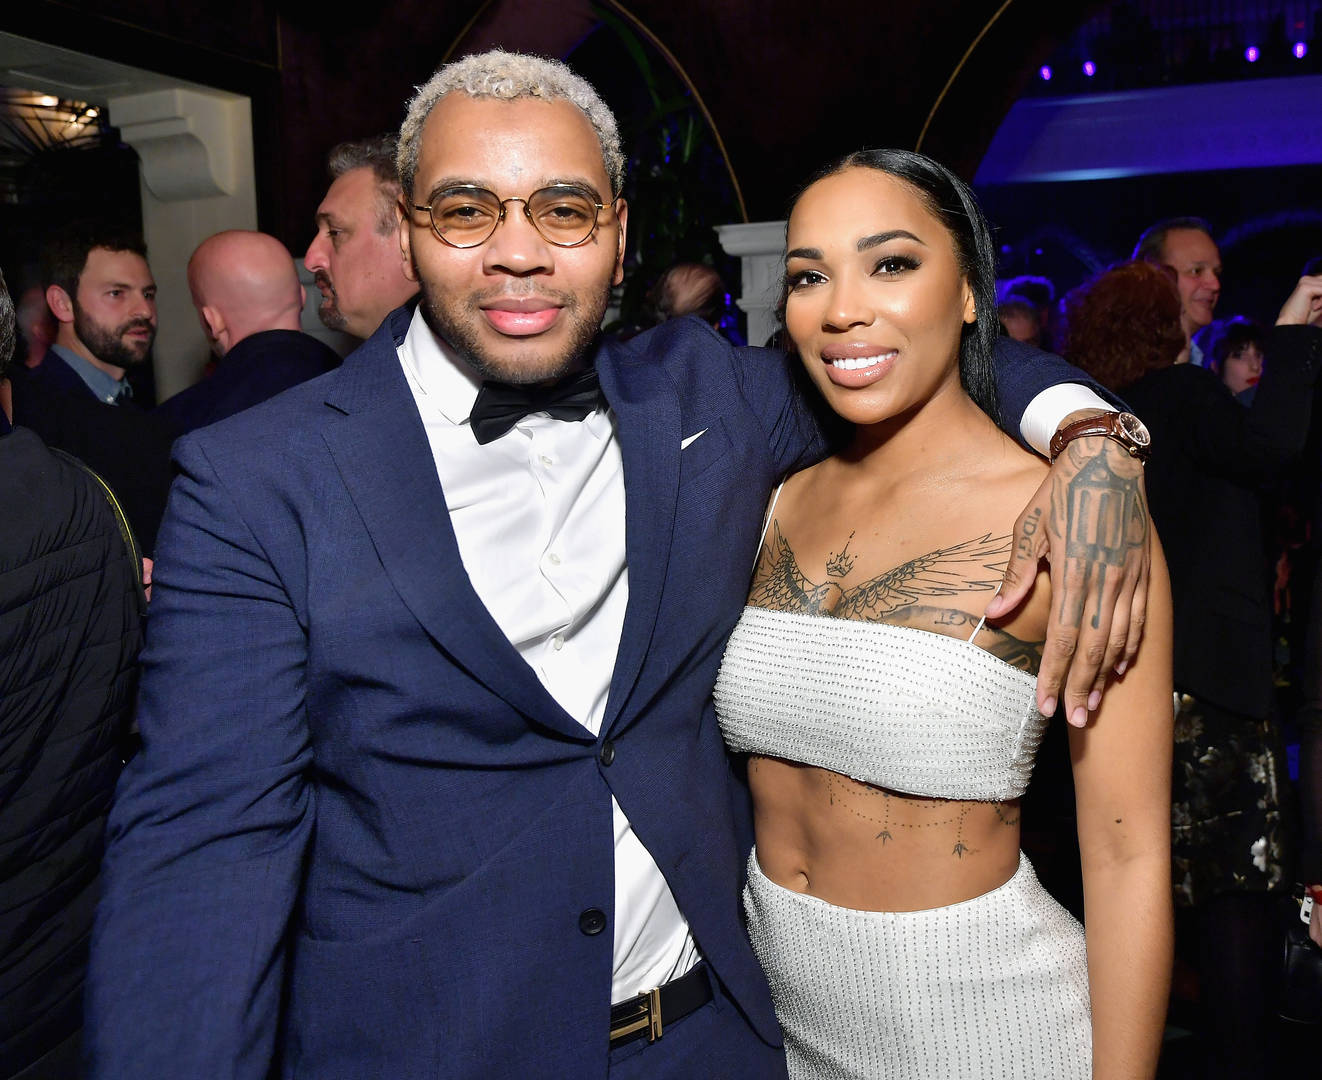 Kevin Gates Serenades His Wife In Ridiculous Fashion; DaBaby & MoneyBagg Yo Laugh Along